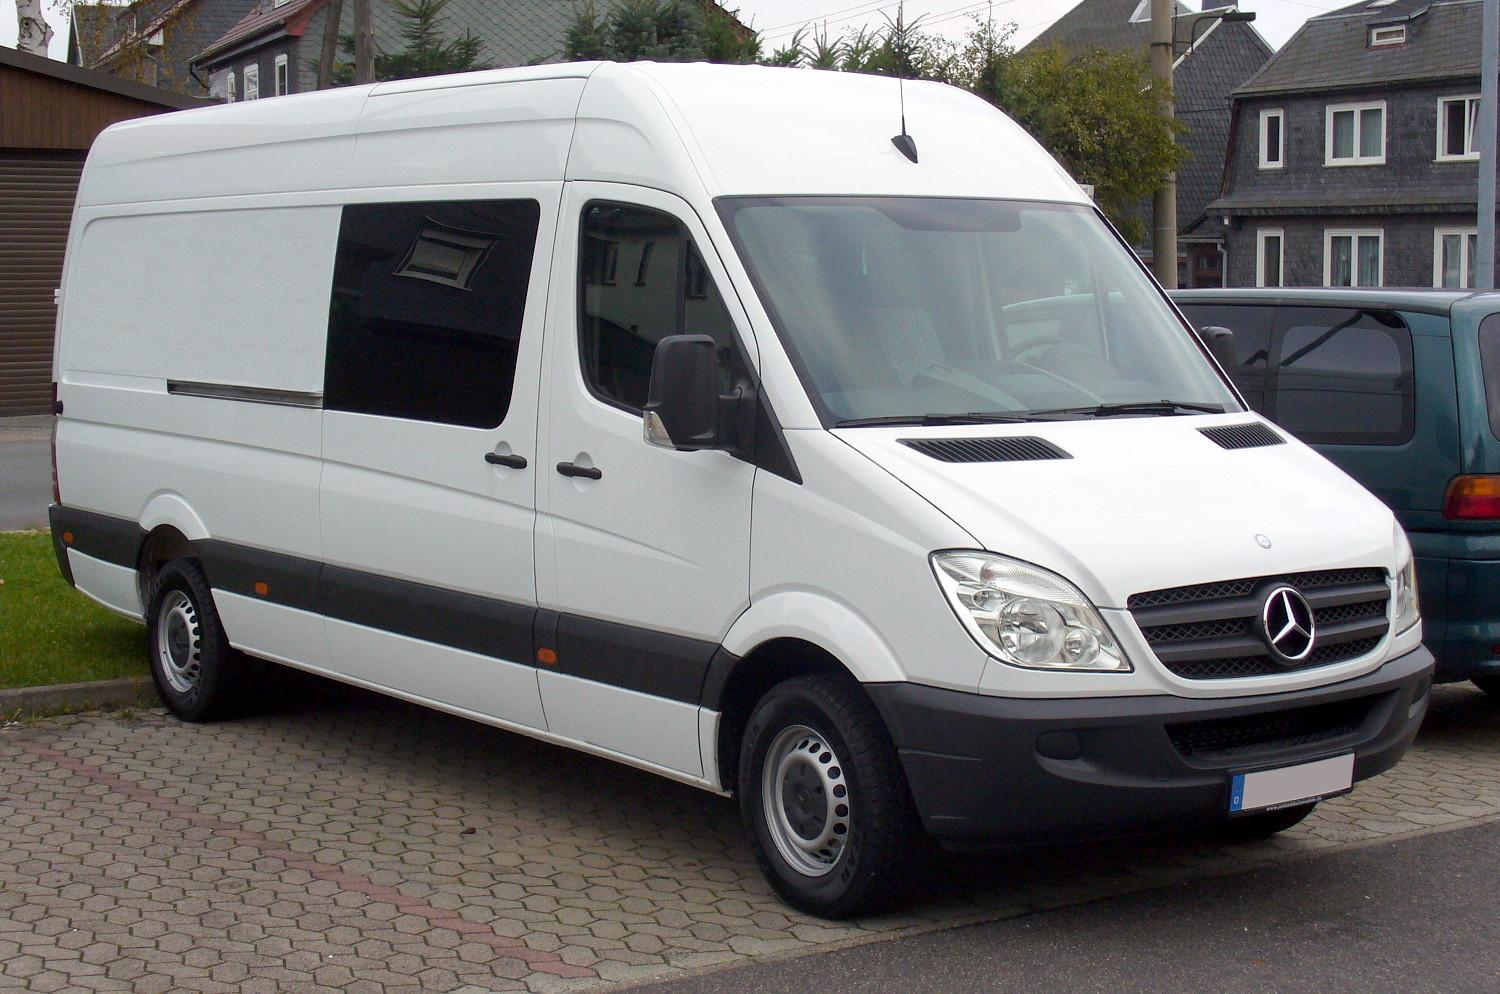 Mercedes-benz sprinter photo - 1